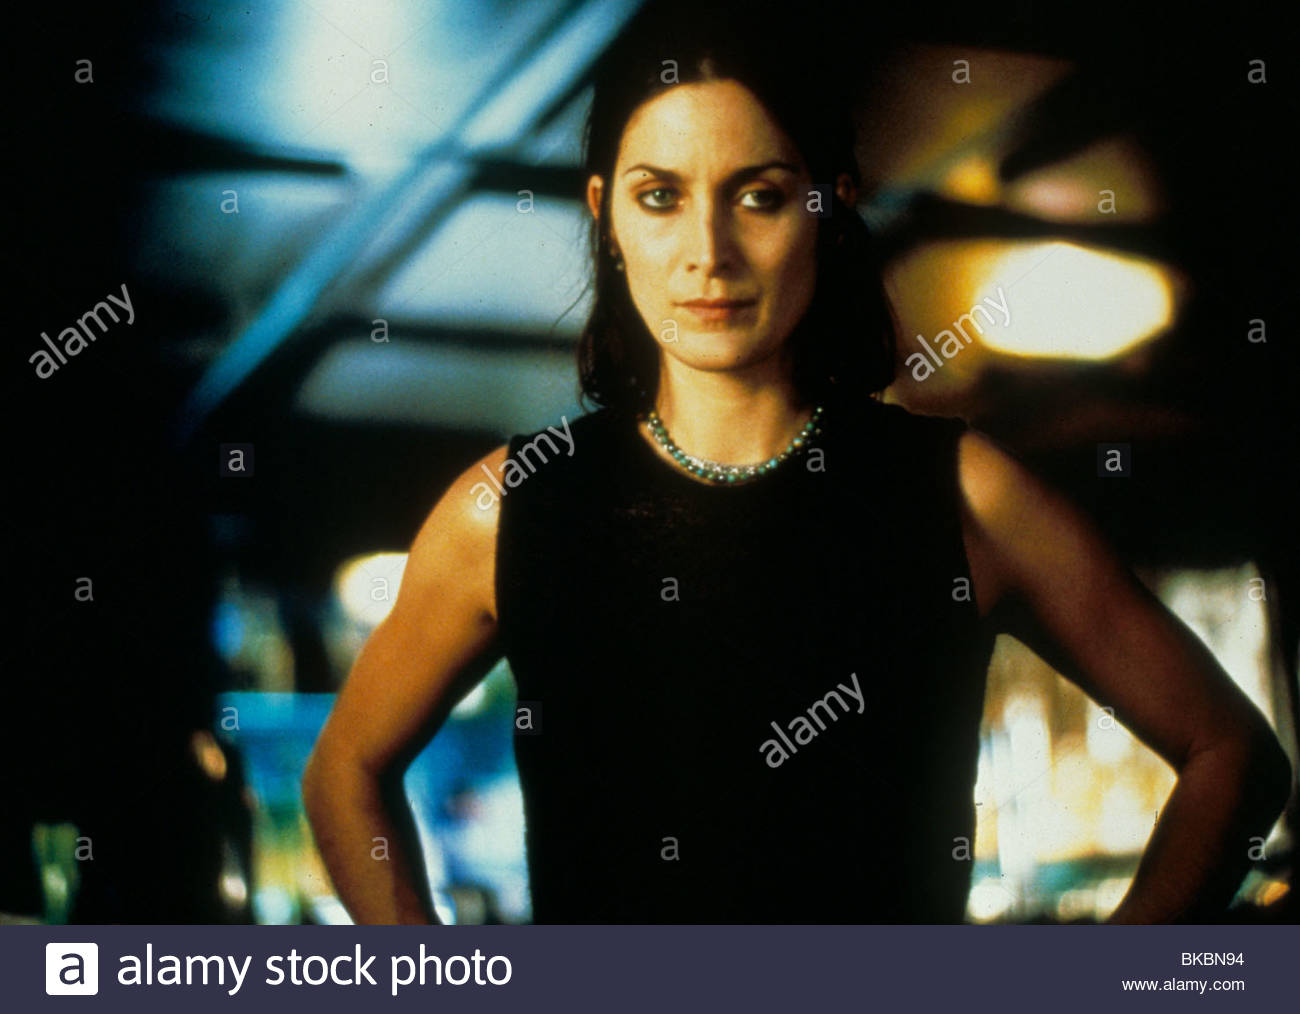 MEMENTO -2000 CARRIE-ANNE MOSS - Stock Image